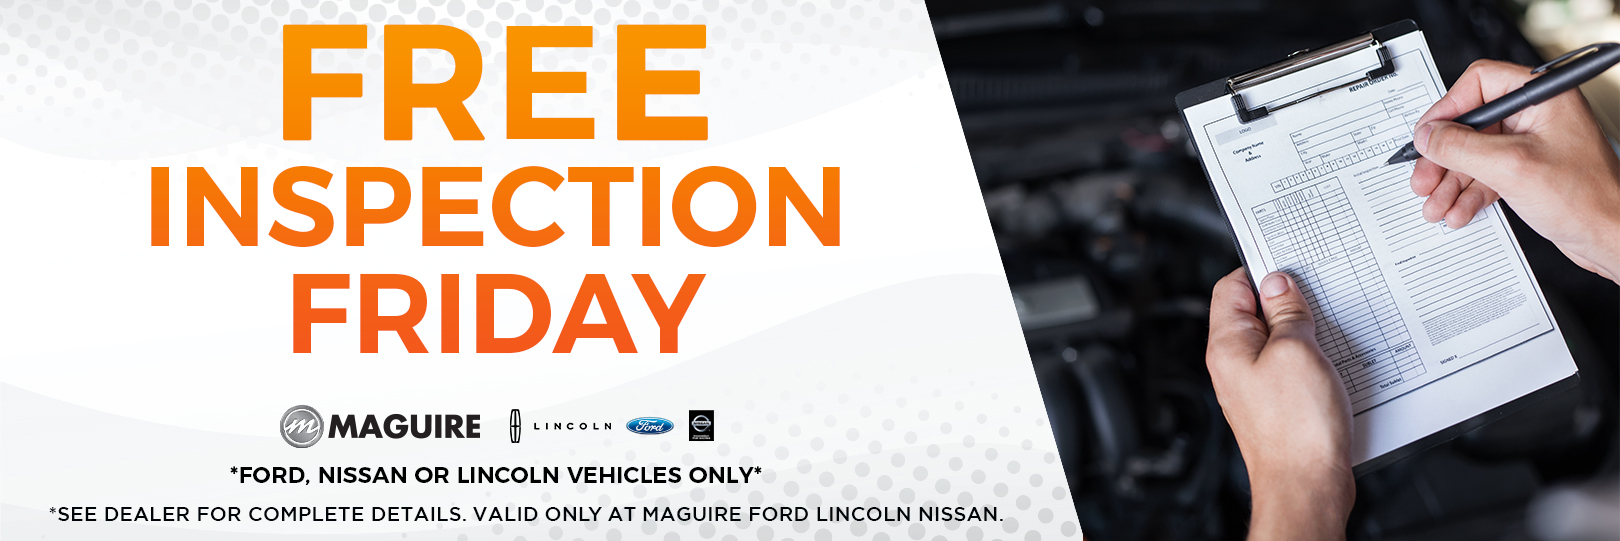 Free Inspection Friday!